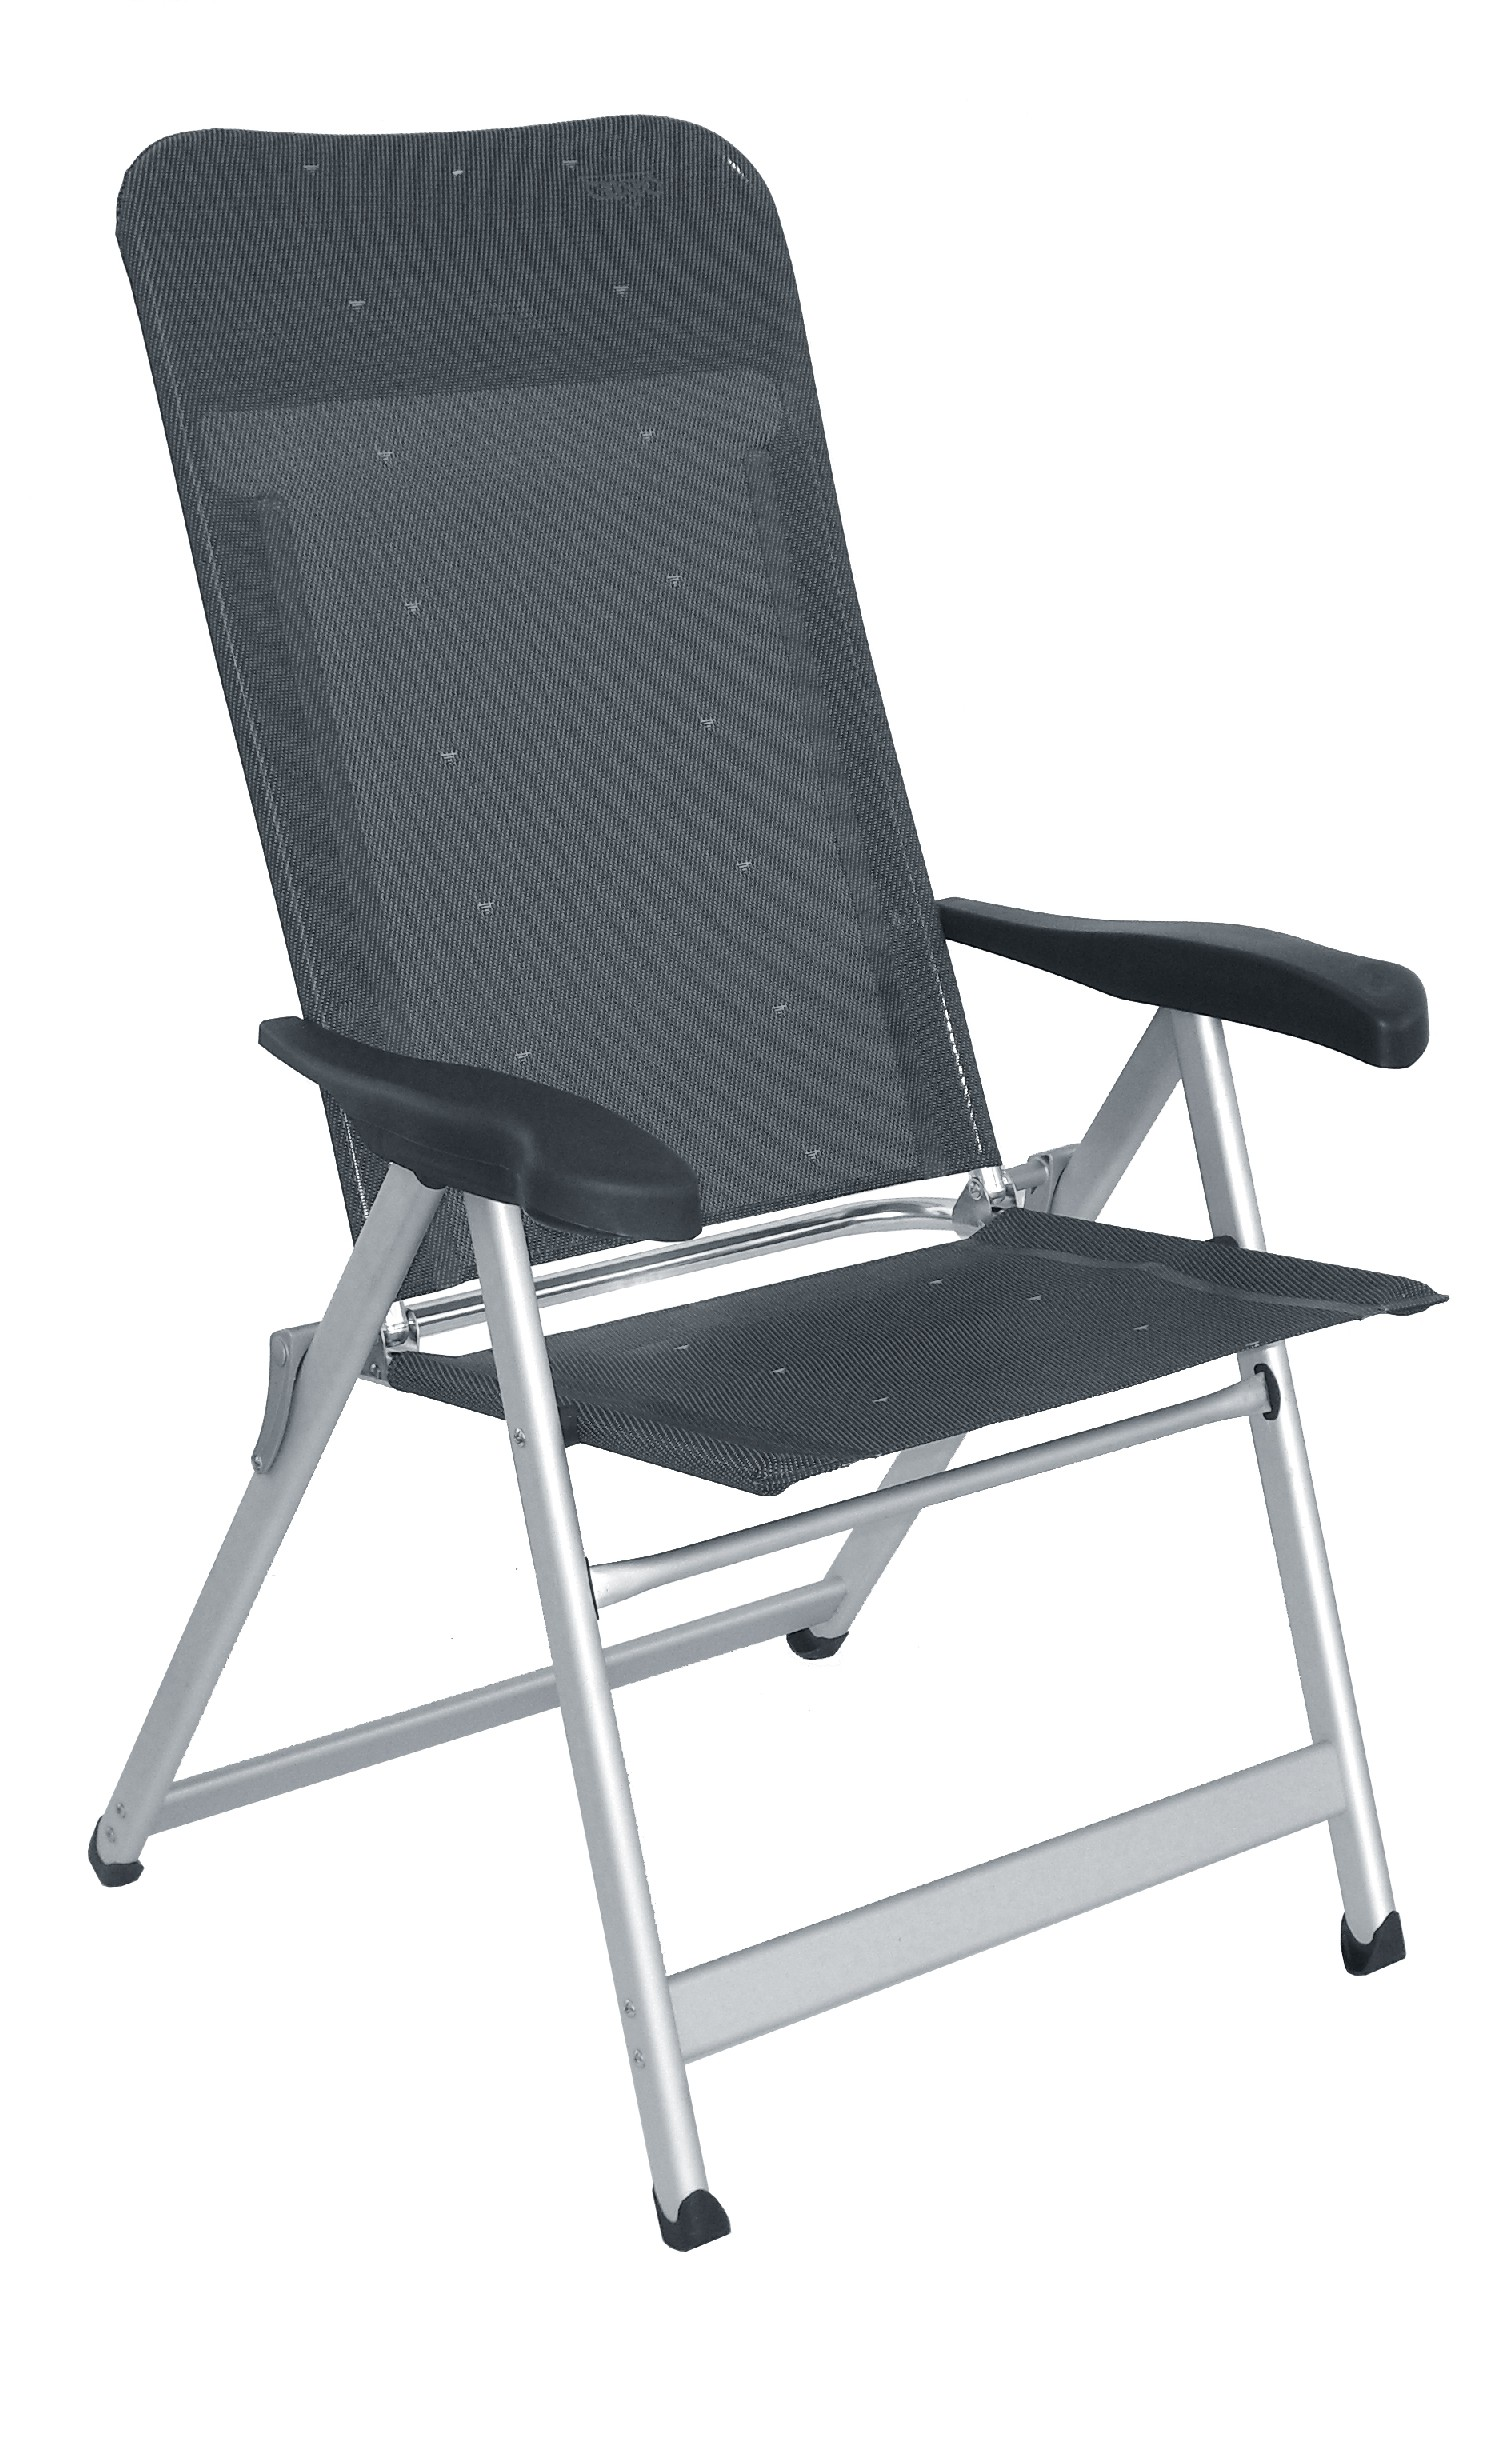 Best Camp Chair Spanish Firm Crespo Has Again Won The Best Camping Chair